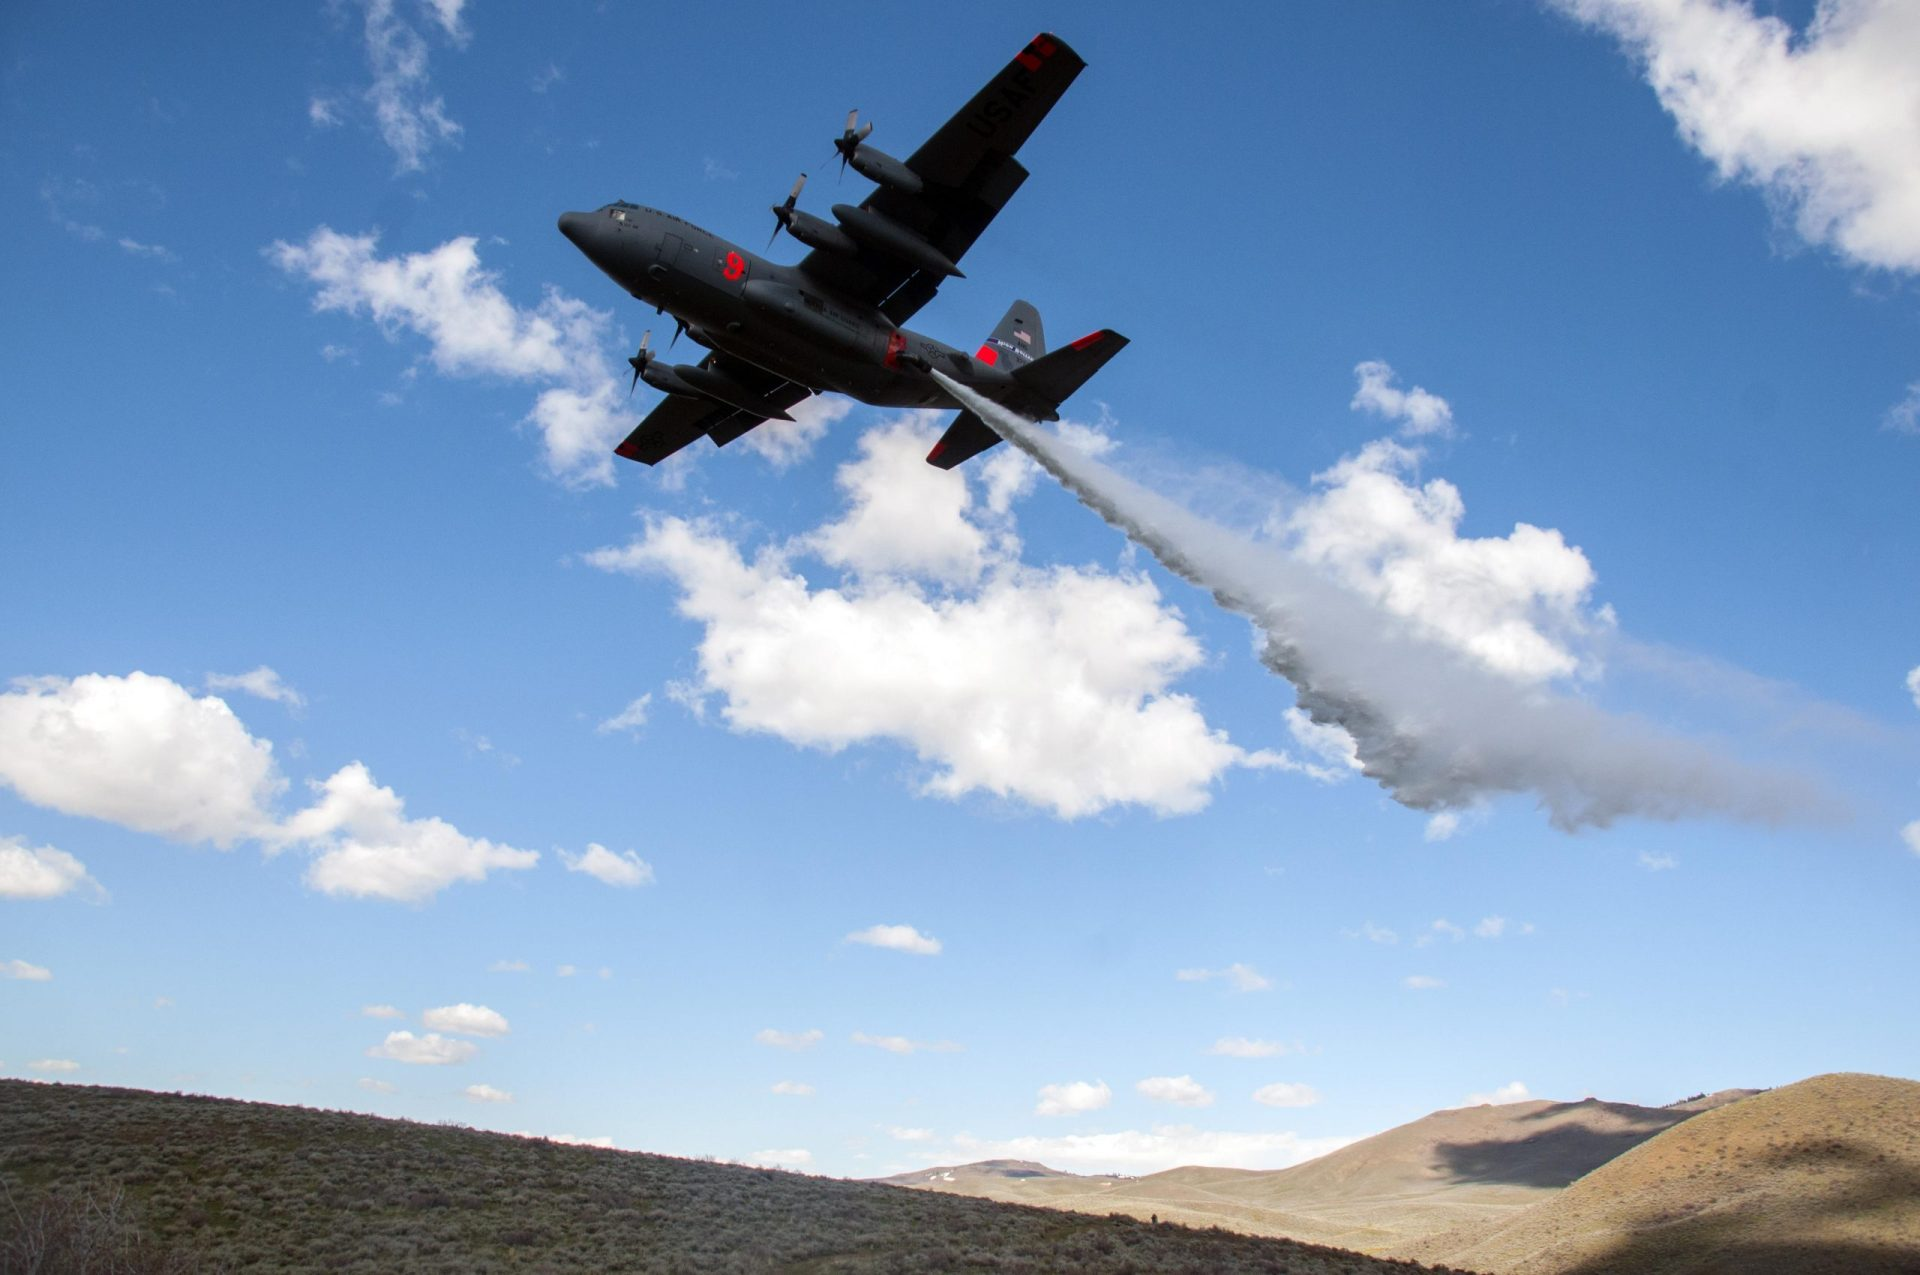 A C-130 with the 152nd Airlift Wing, Nevada Air National Guard, drops water in the mountains east of Boise, Idaho as part of the annual Modular Airborne Fire Fighting System training and certification, April 21, 2017.